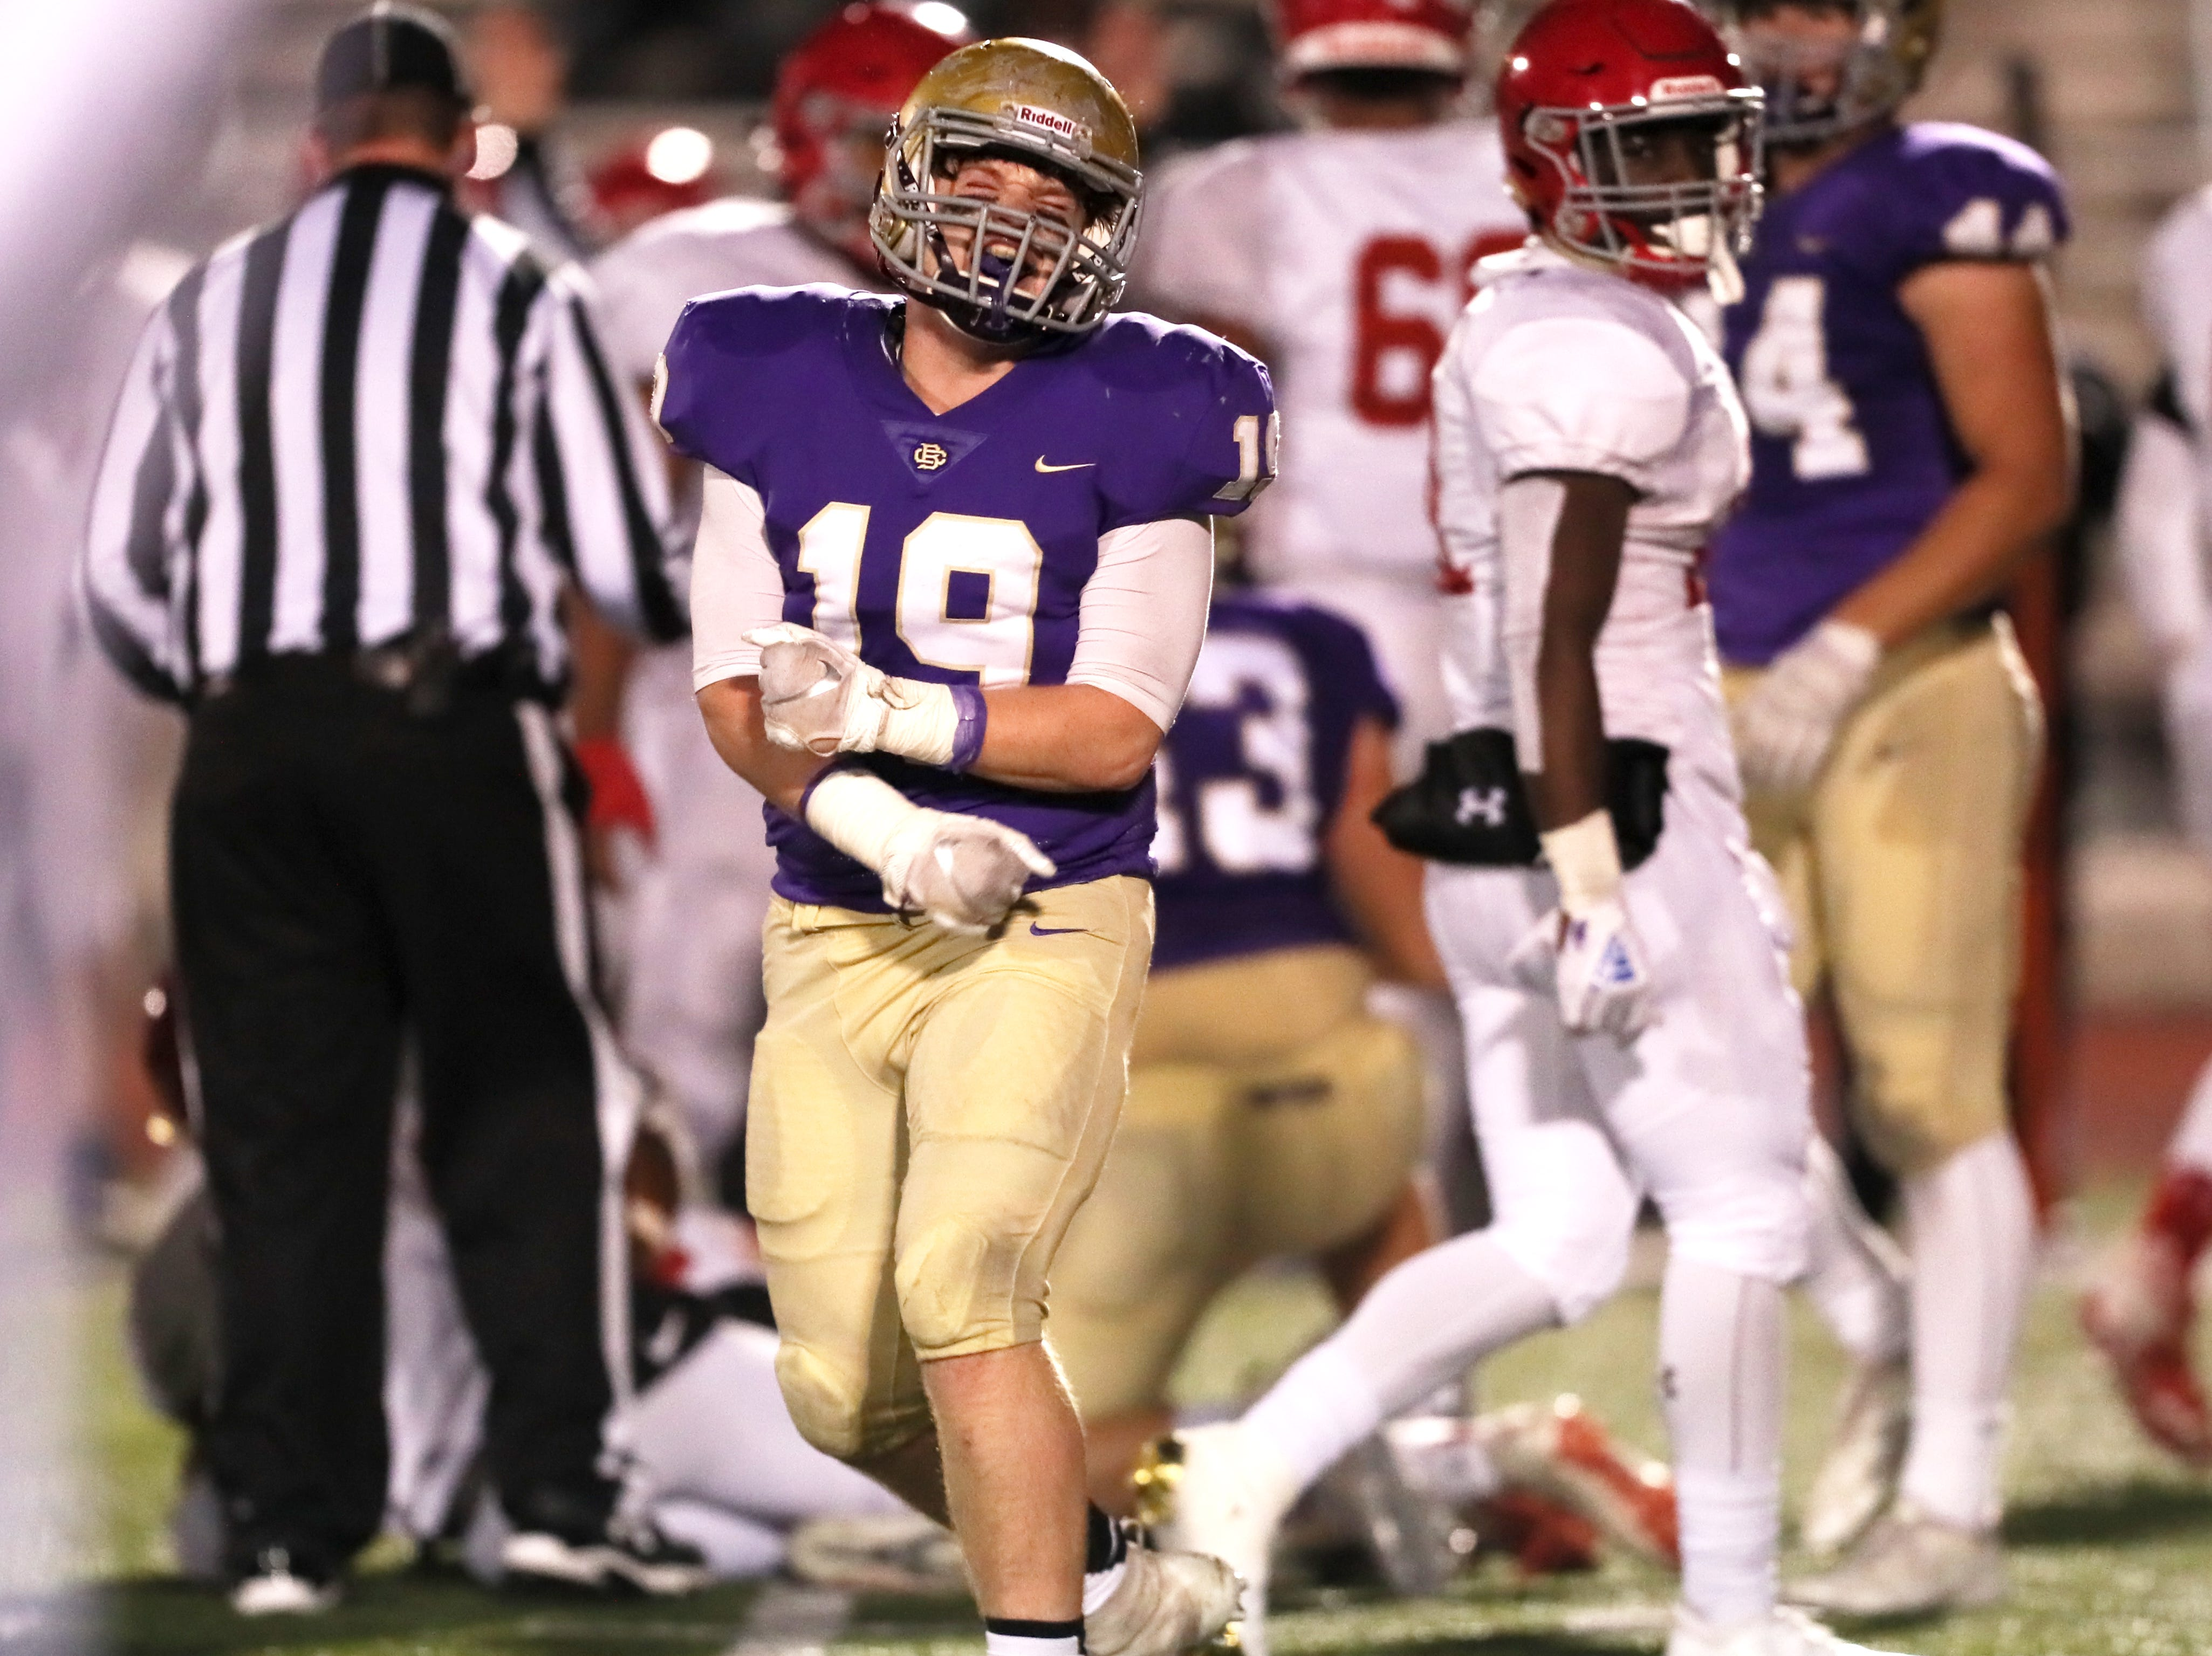 14. Christian Brothers (8-3) lost to Brentwood Academy, 21-14.